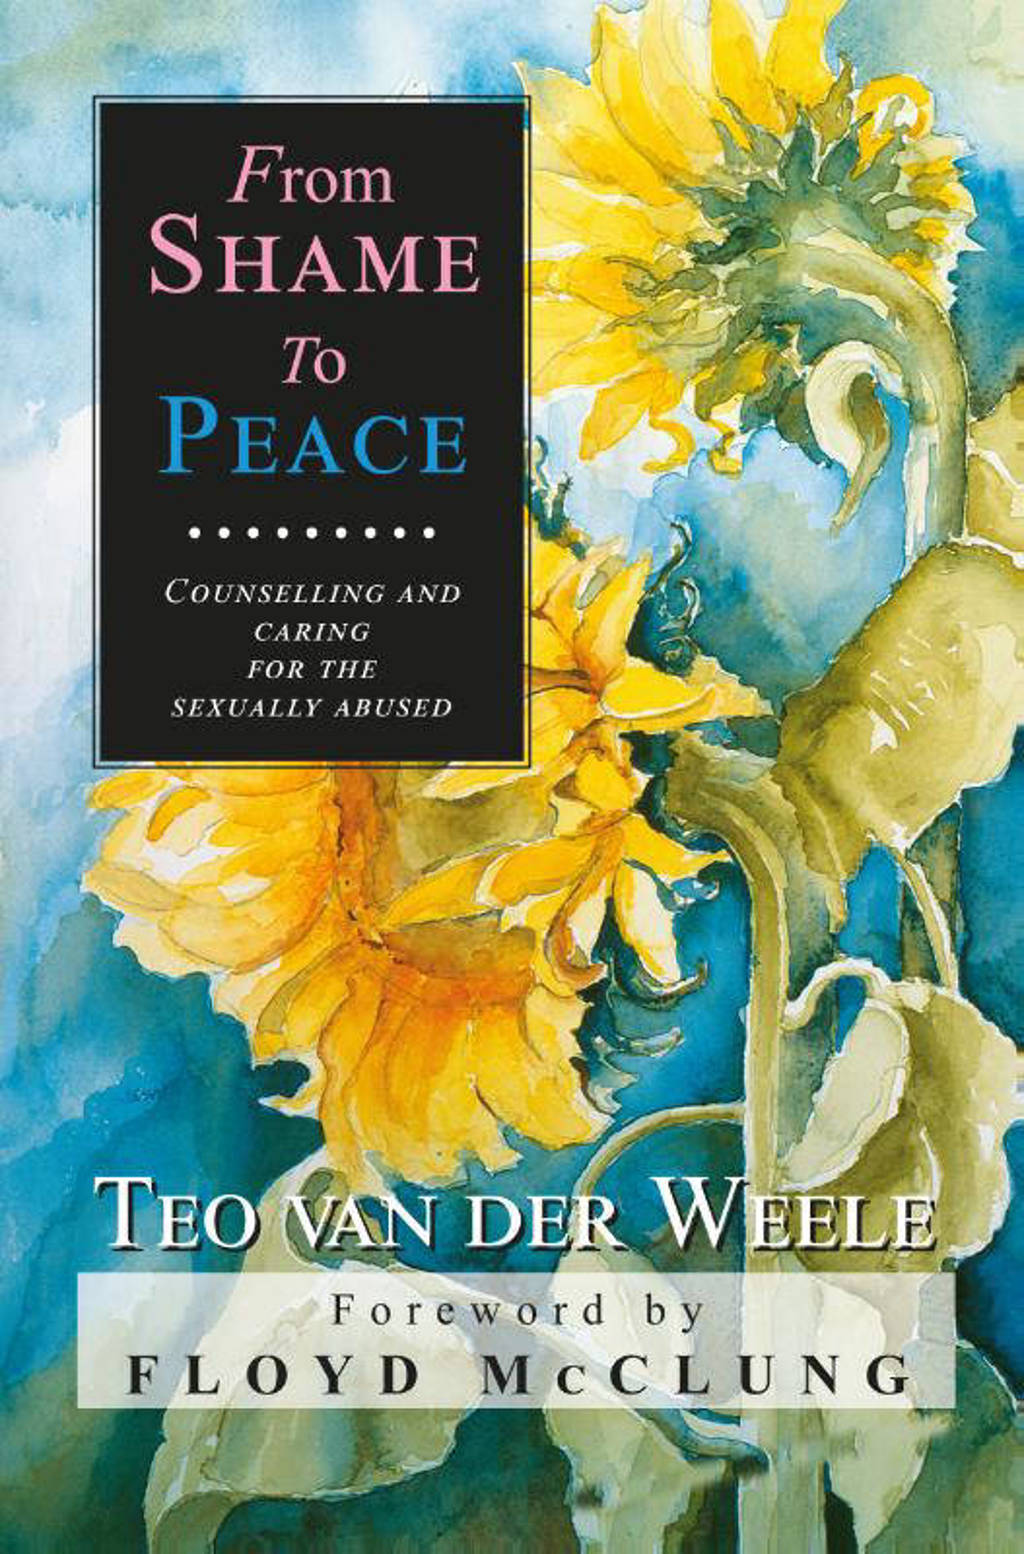 From shame to peace - T. van der Weele